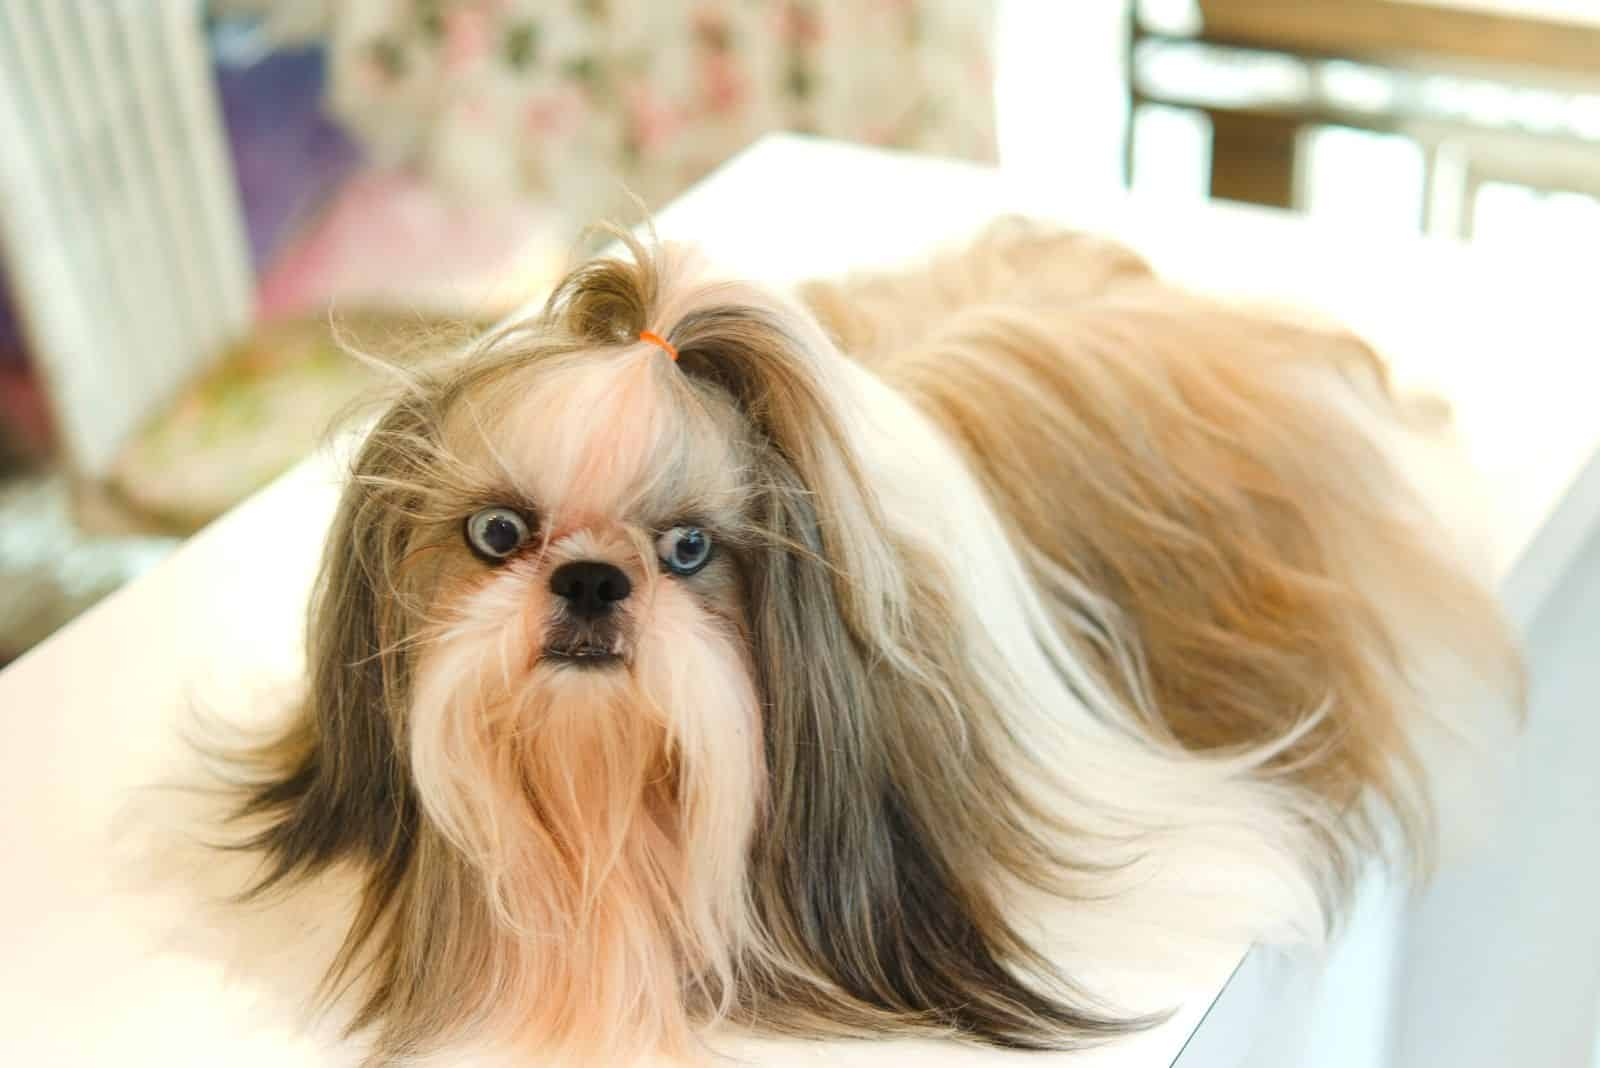 shih tzu portait of a dog on the table